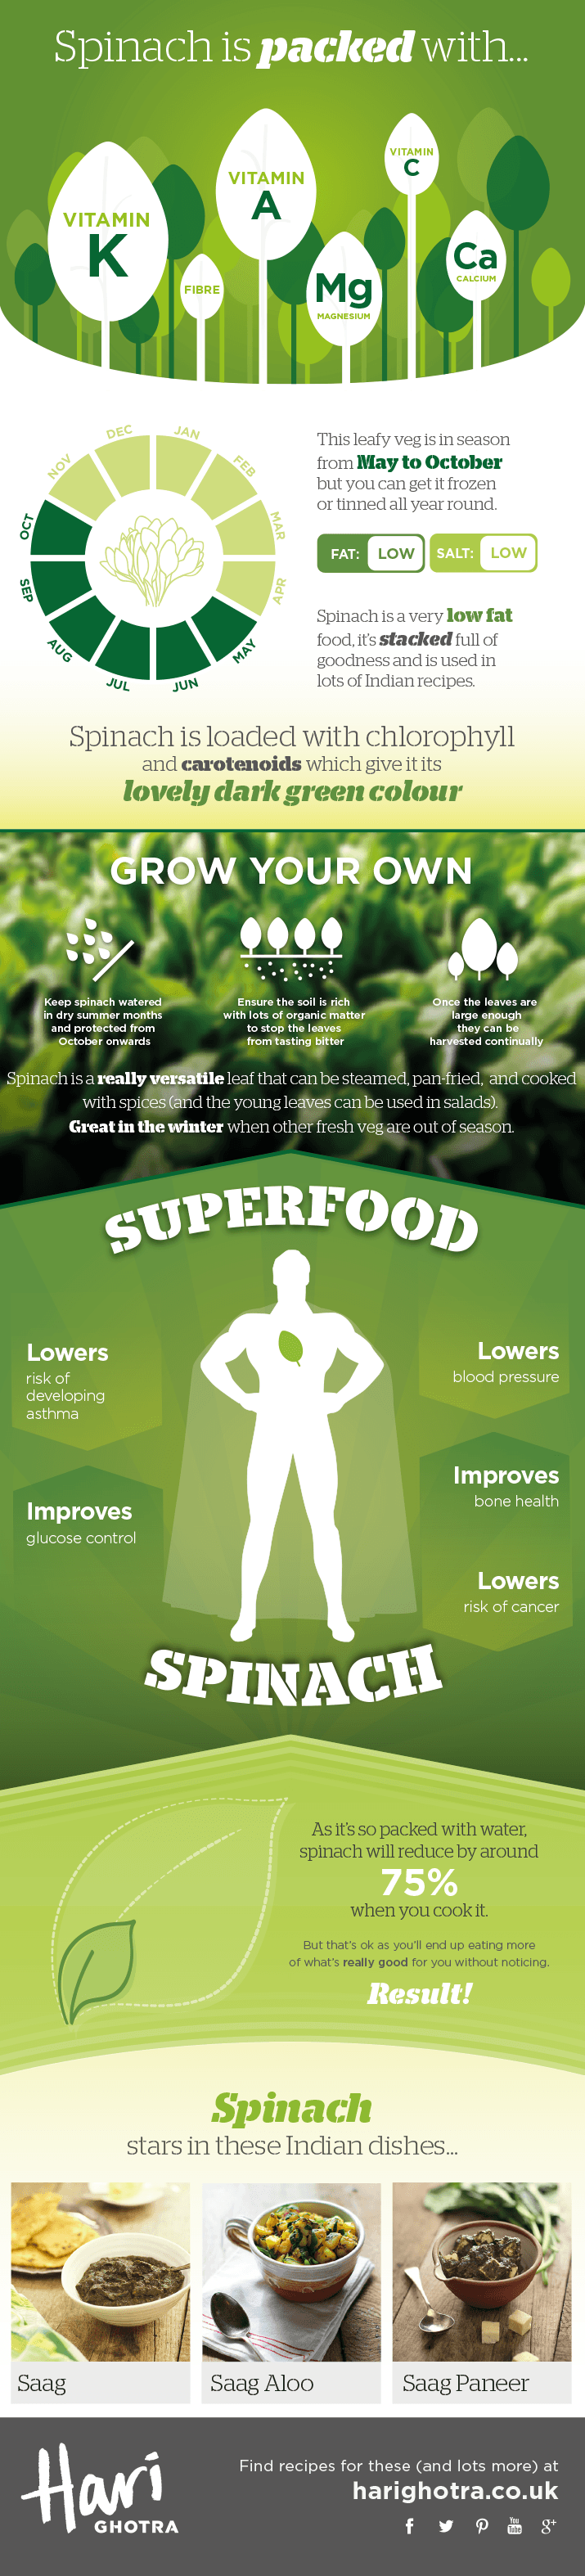 Spinach Infographic showing the health benefits of Spinach